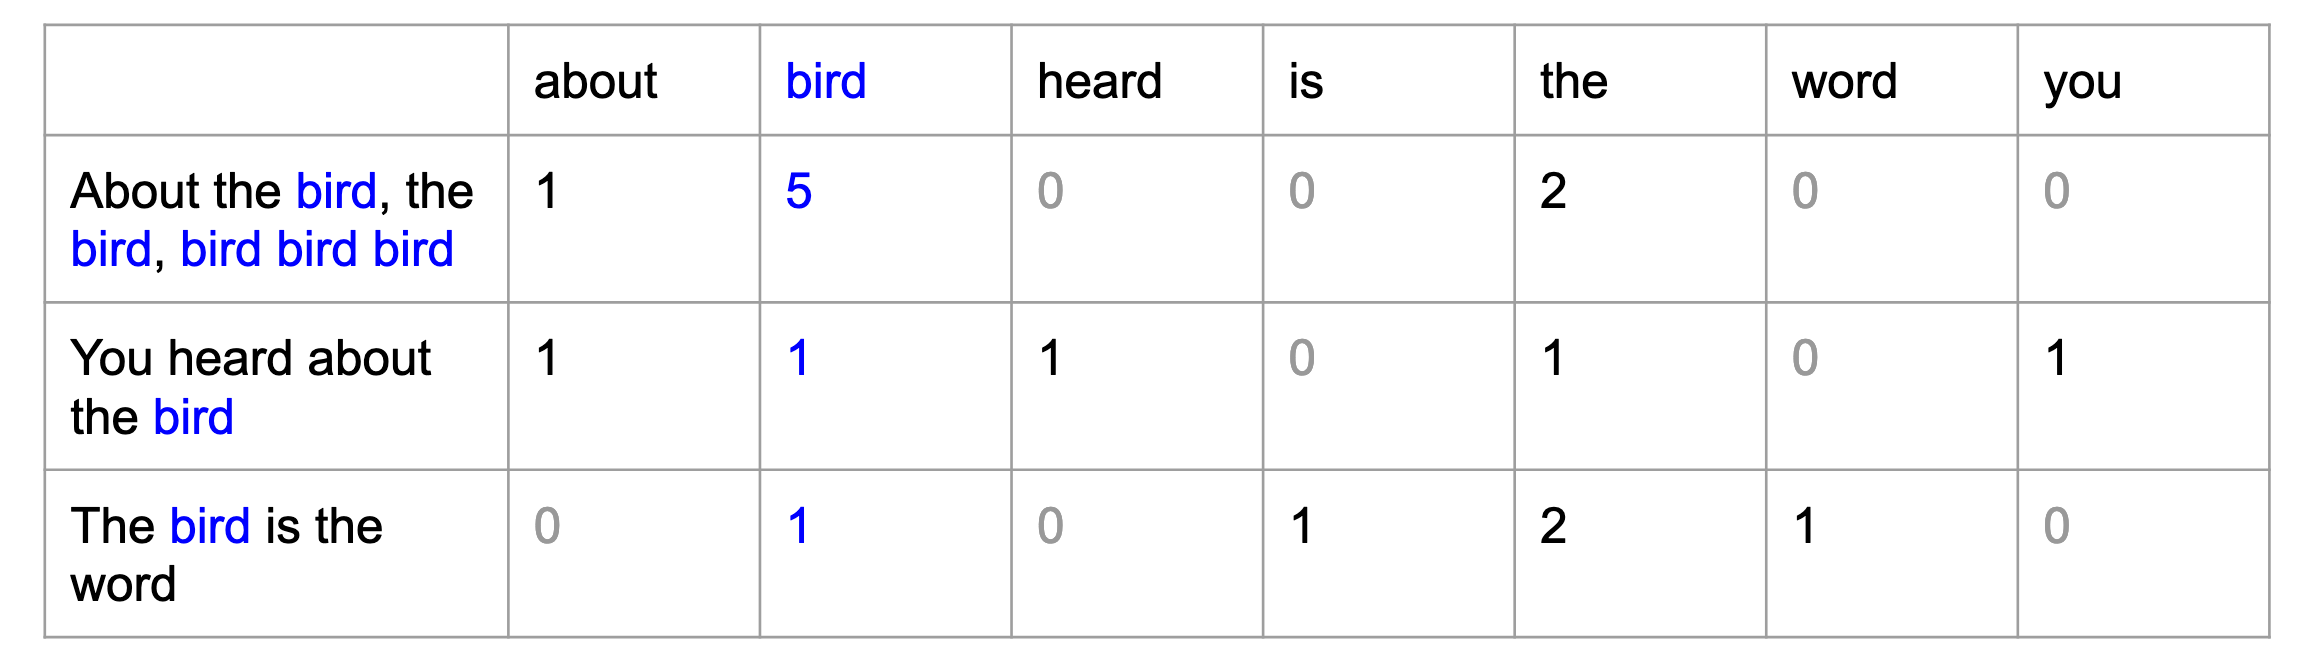 A table counting each time a word appears in  each of the following sentences: